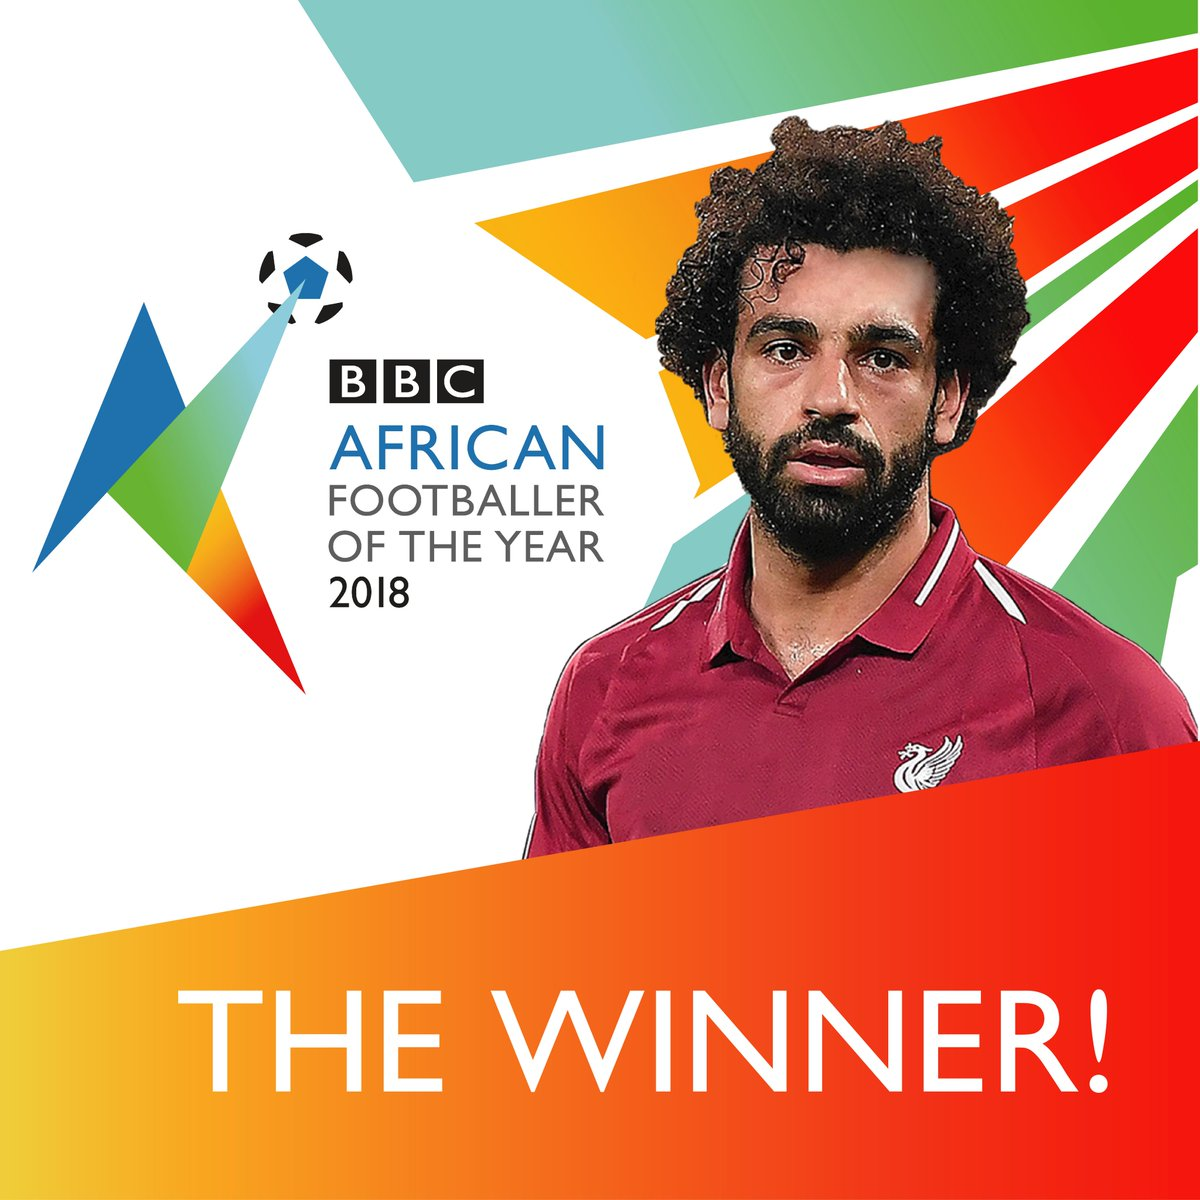 ⚡⚽ He's done it again @22mosalah!  is this year's BBC African Footballer of the Year! ⚡⚽  @LFC The  forward who also plays for Egypt's national team is #BBCAFOTY your  winner! 🇪🇬